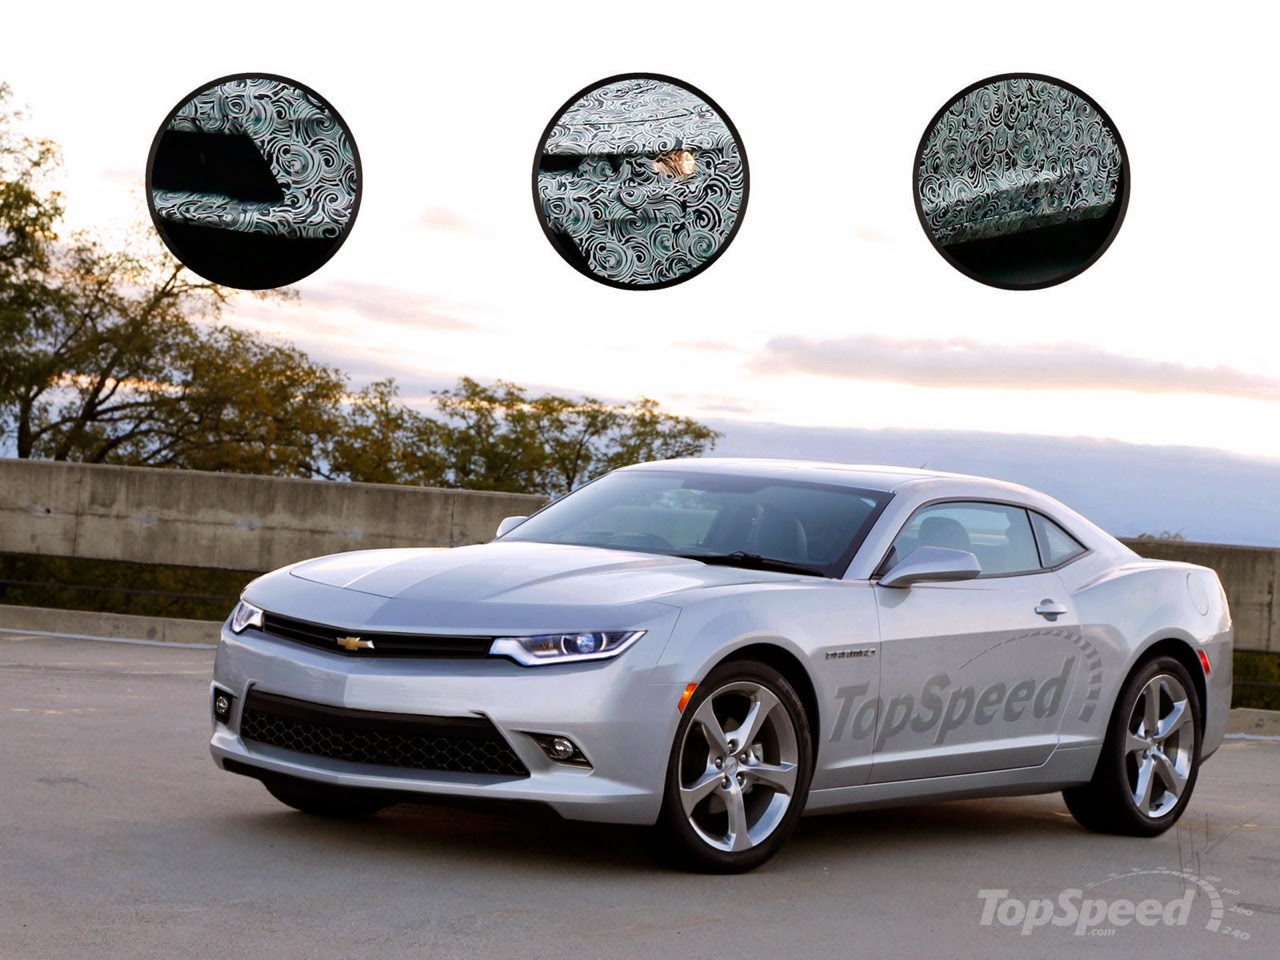 Is This The 2016 Chevrolet Camaro?